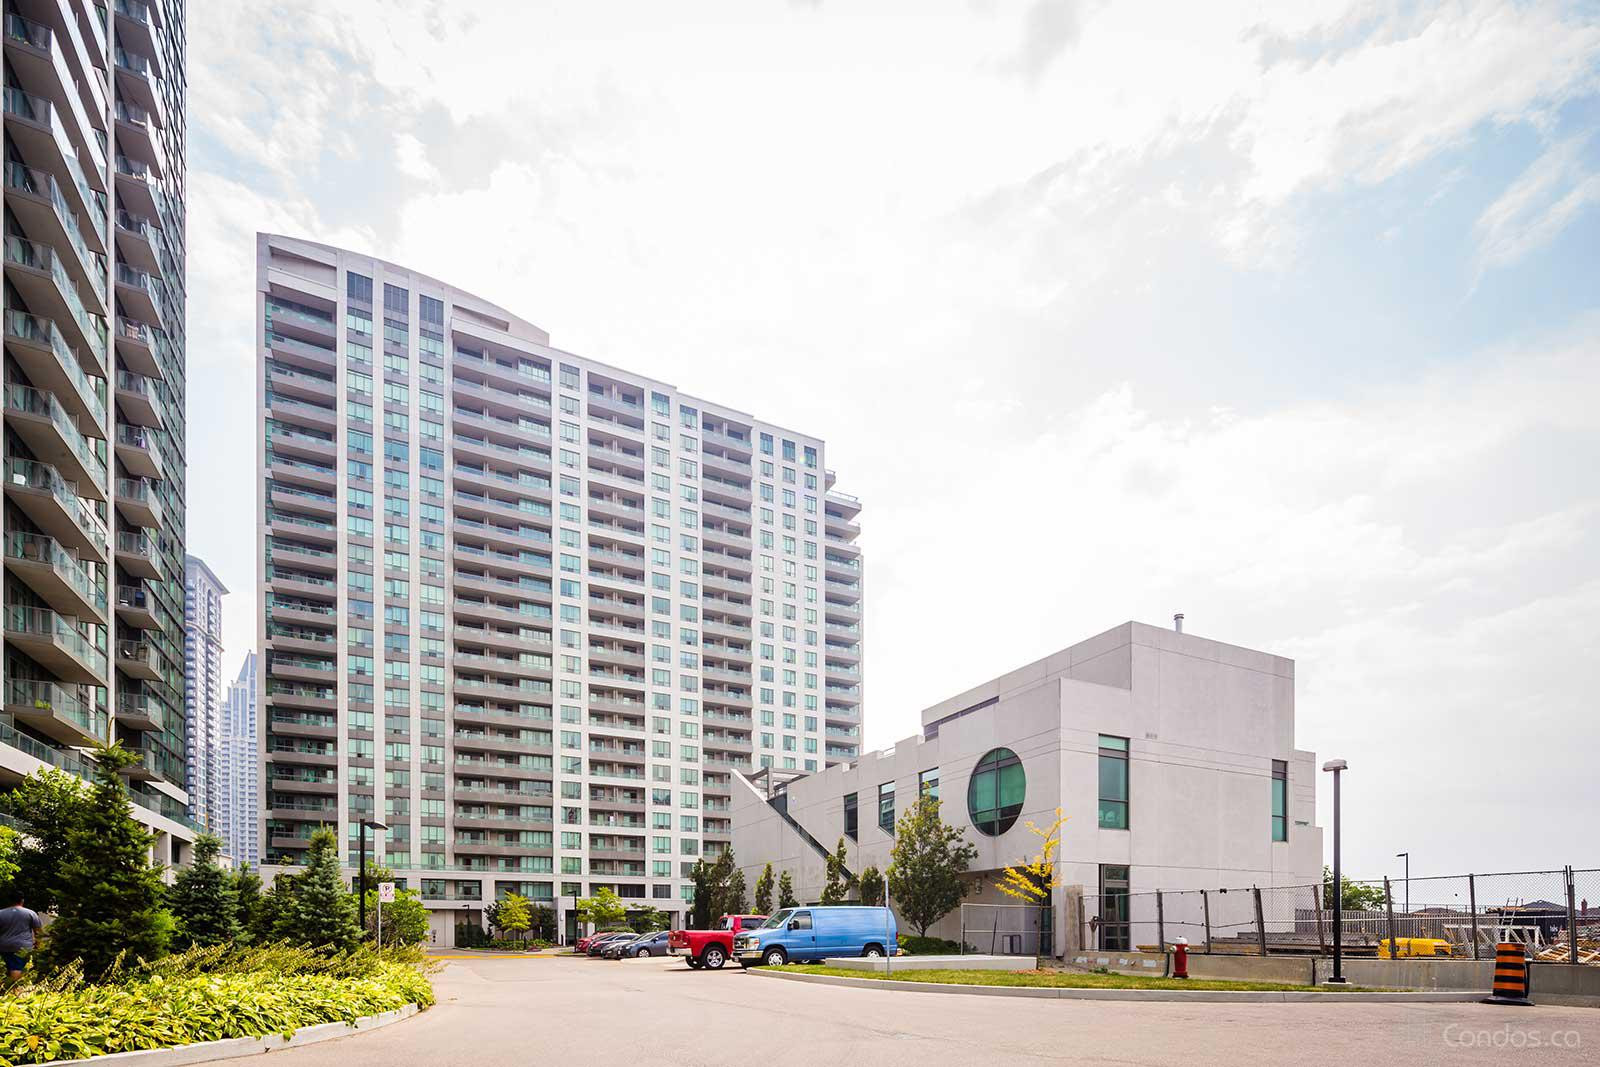 Mirage at 339 Rathburn Rd W, Mississauga 1